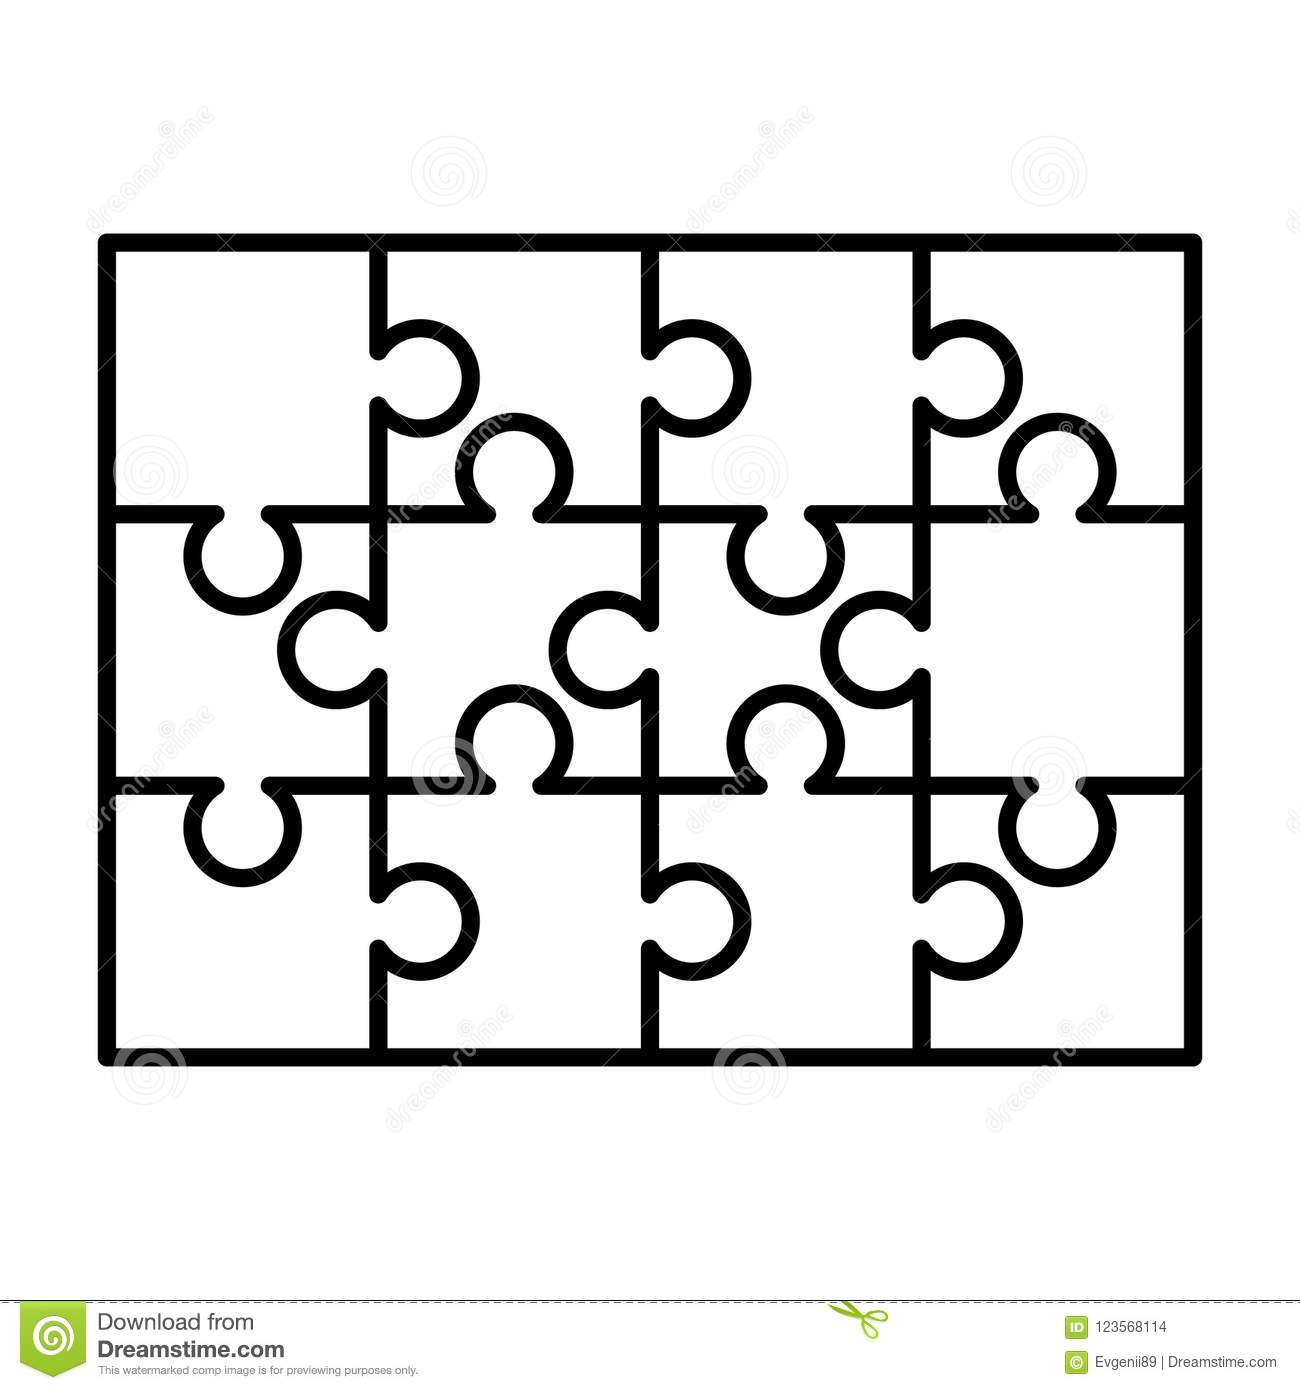 12 White Puzzles Pieces Arranged In A Rectangle Shape. Jigsaw Puzzle - Print Puzzle From Photo